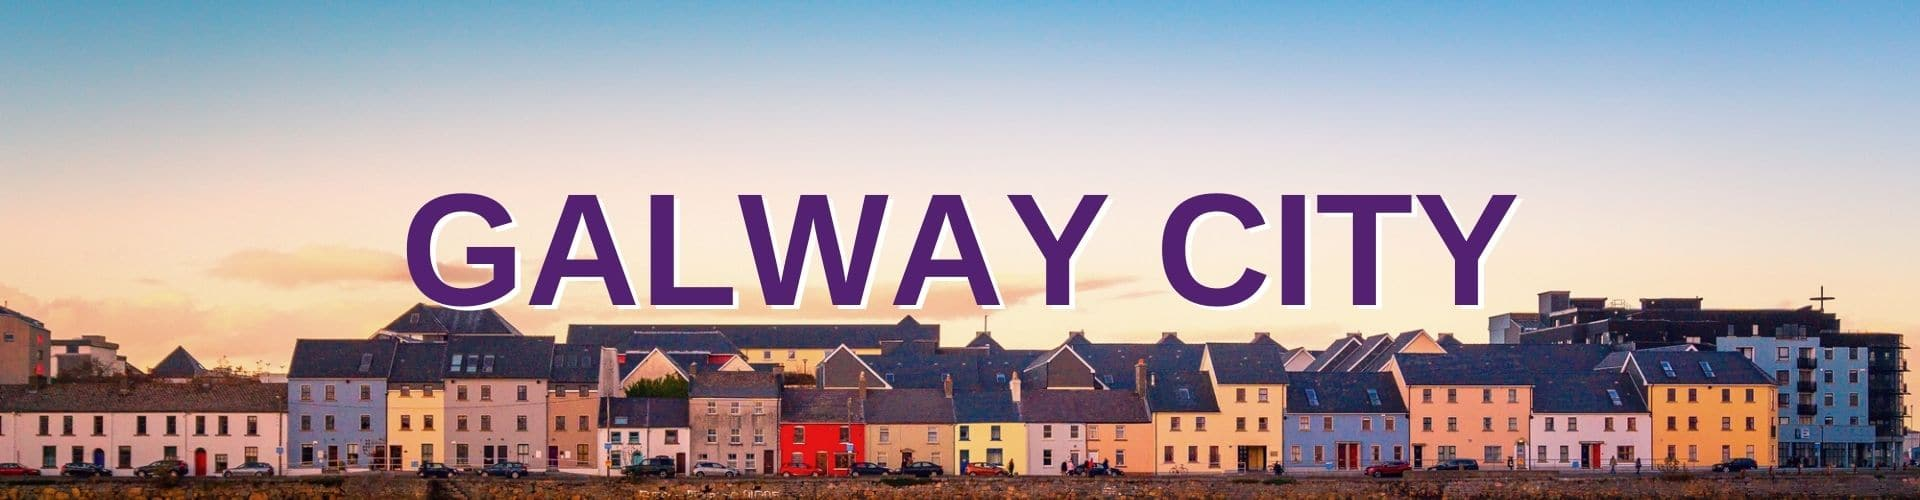 Galway City, Claddagh Bay